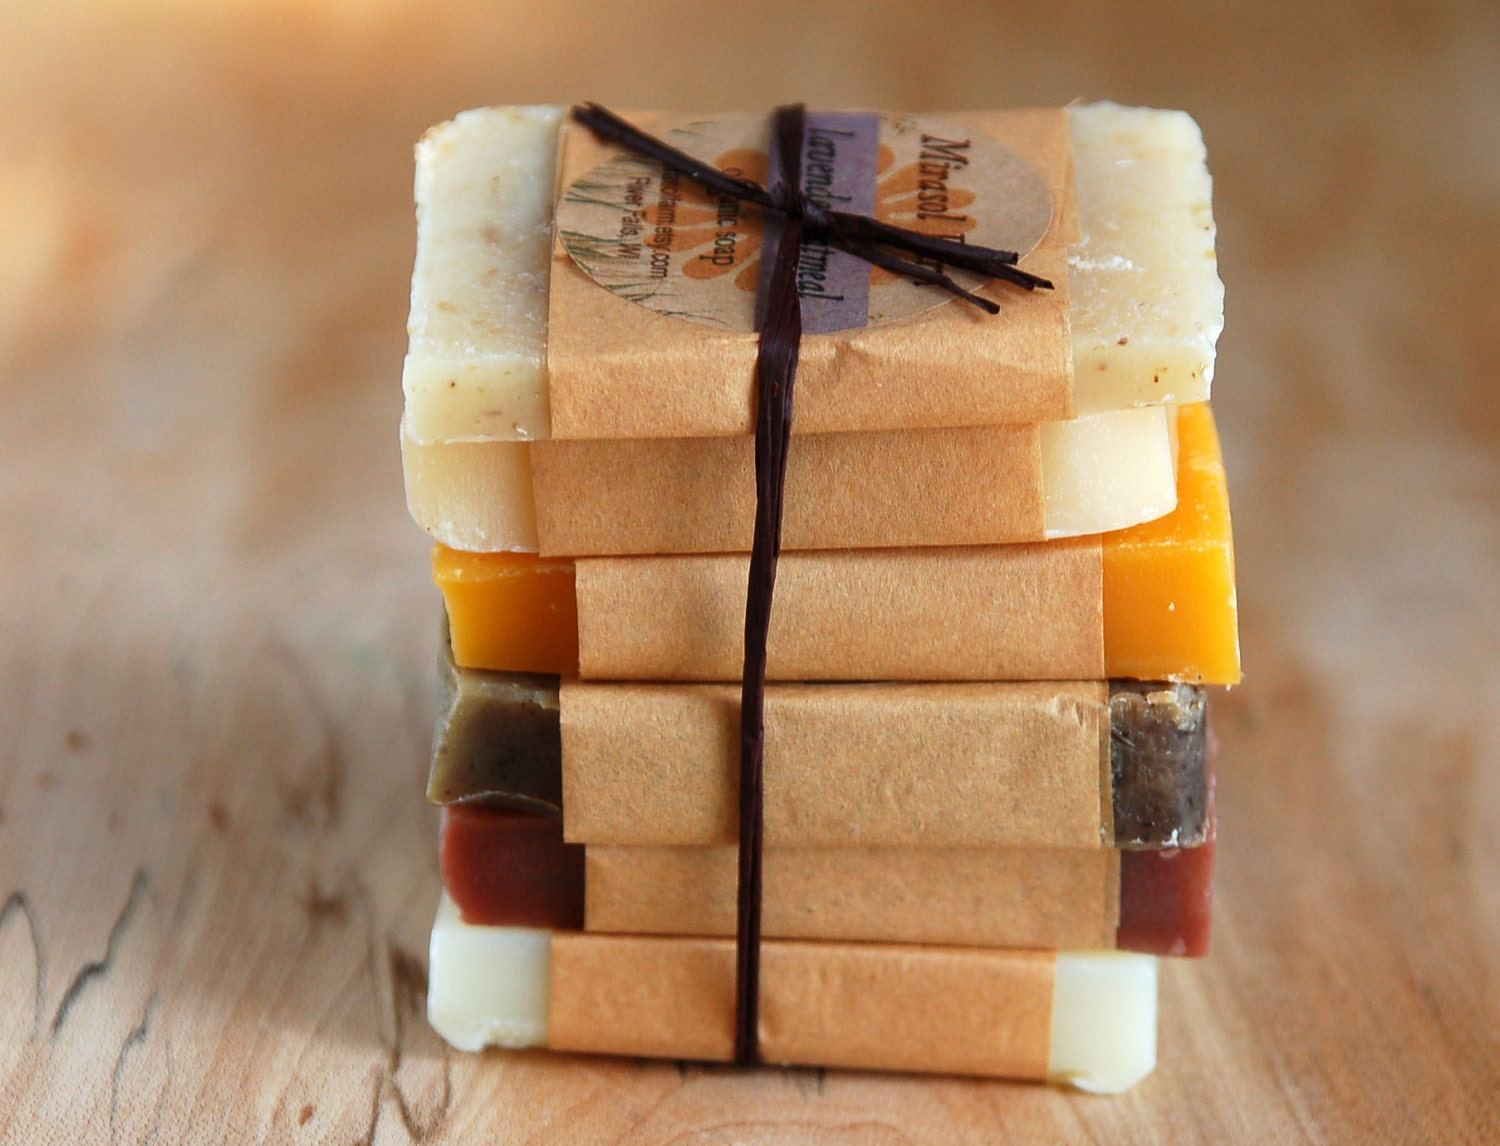 Organic Soap Sample Pack. Soap samples for guests or gifts. 6 travel soaps. Vegan soap. Natural and botanical. - mirasolfarm